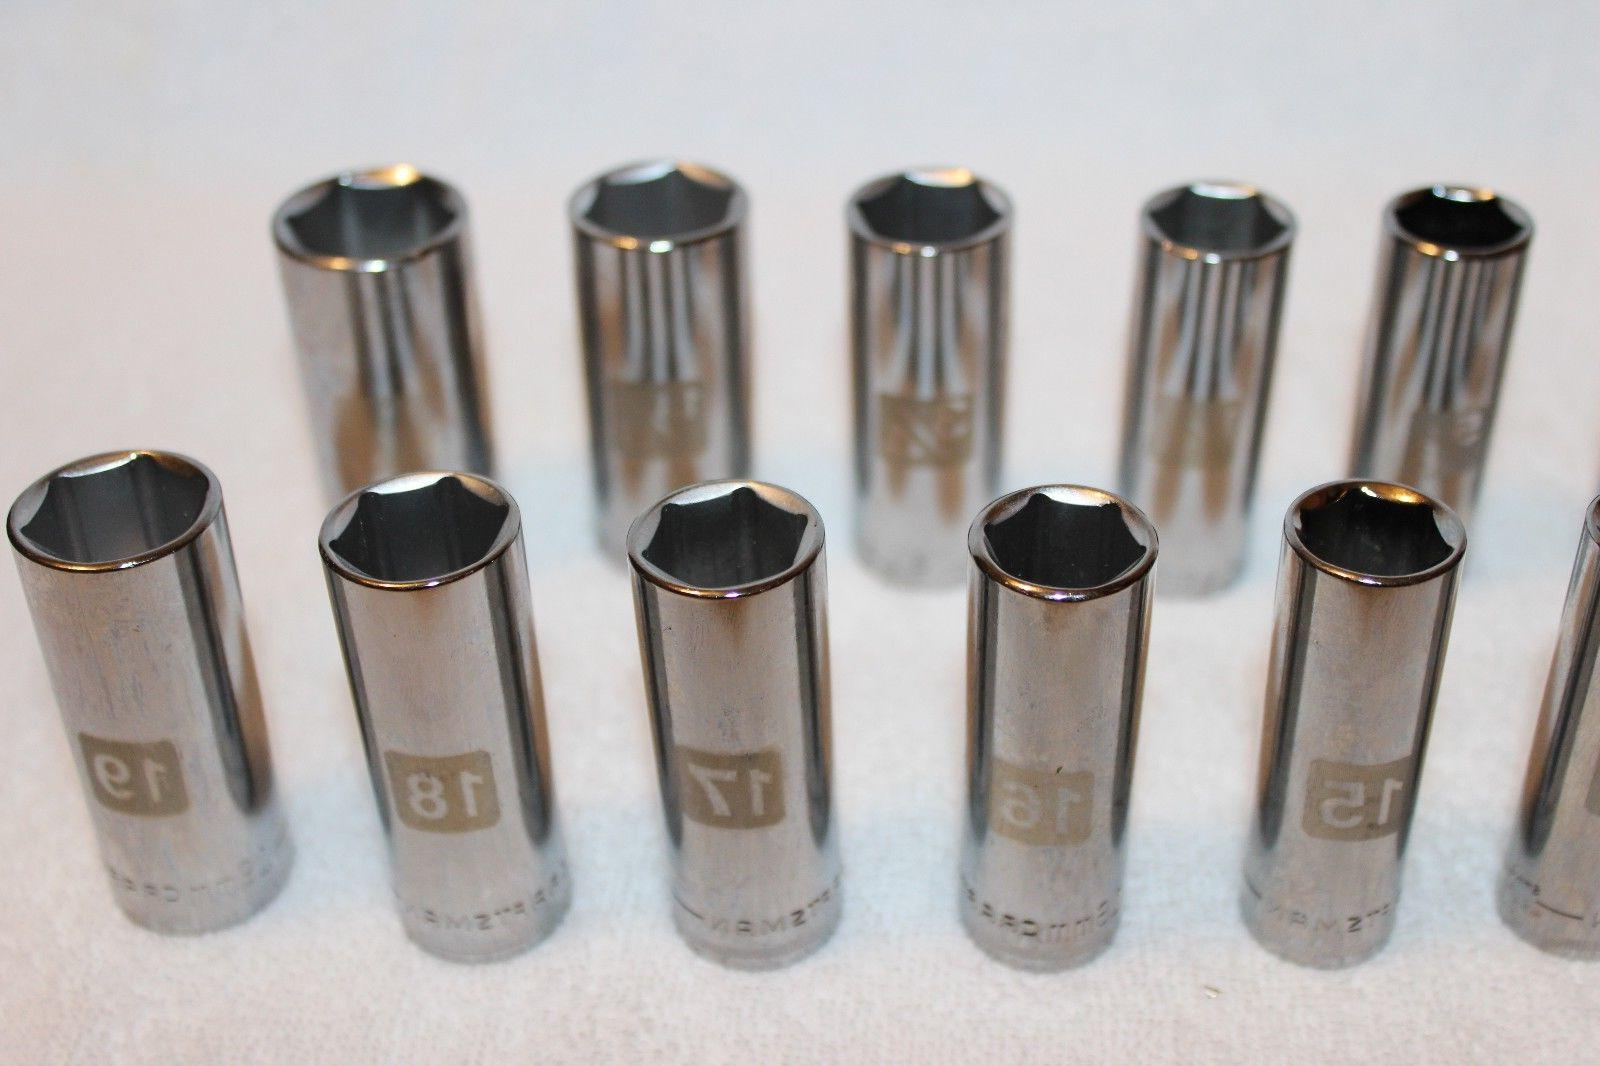 NEW 3/8 DEEP Set Metric & 6 LASER ETCHED